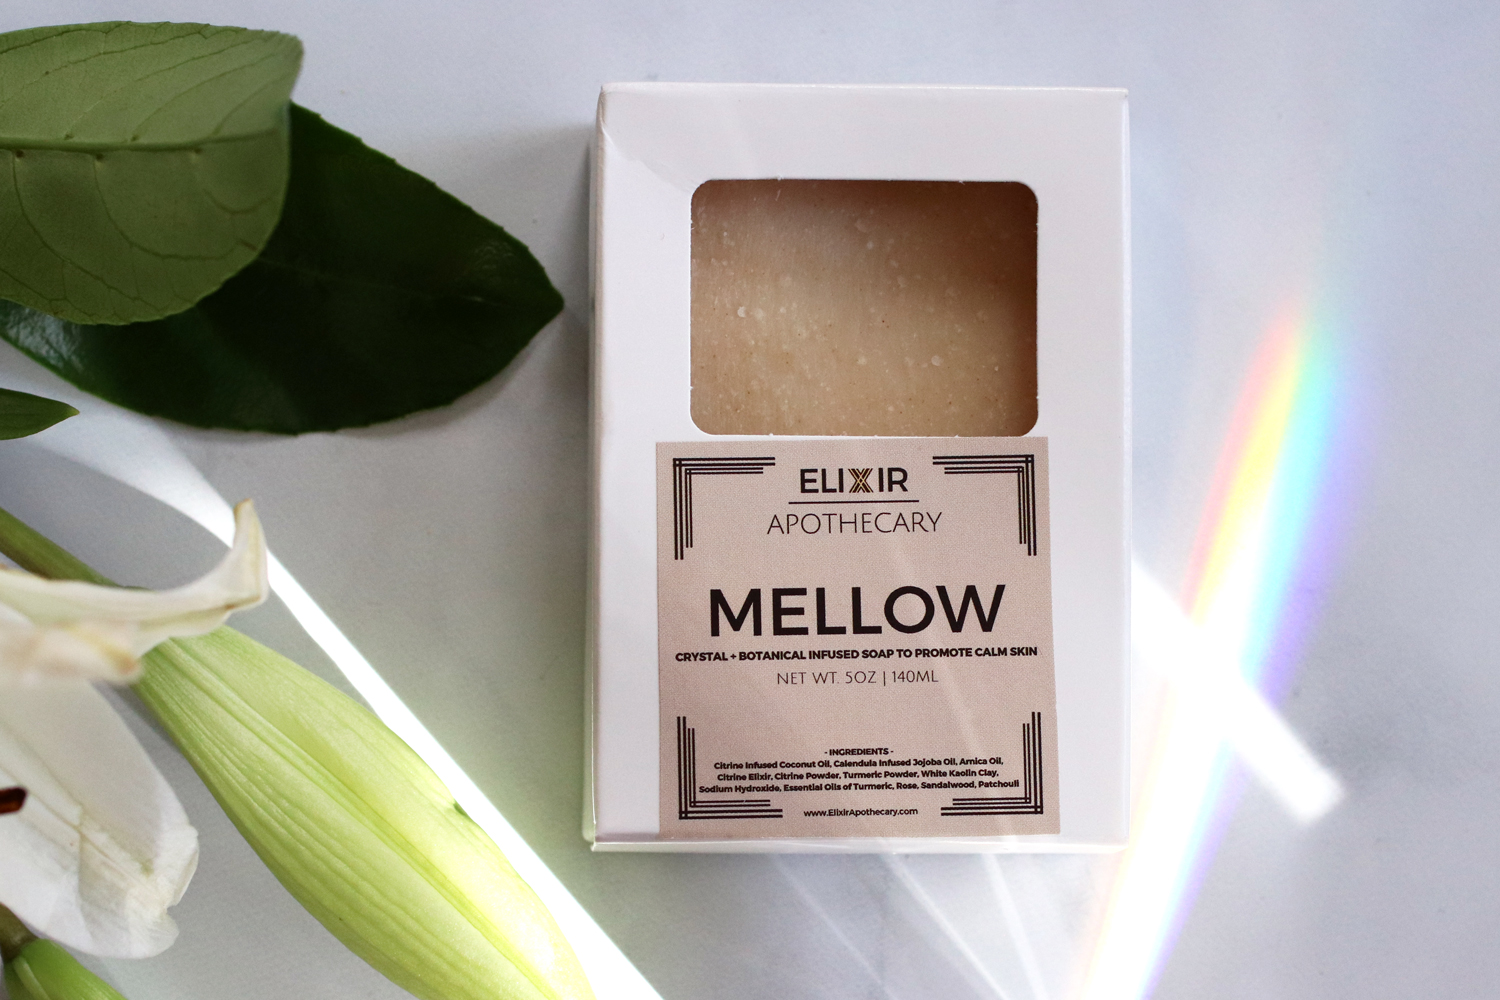 Elixir Apothecary Citrine Infused Mellow Soap Bar